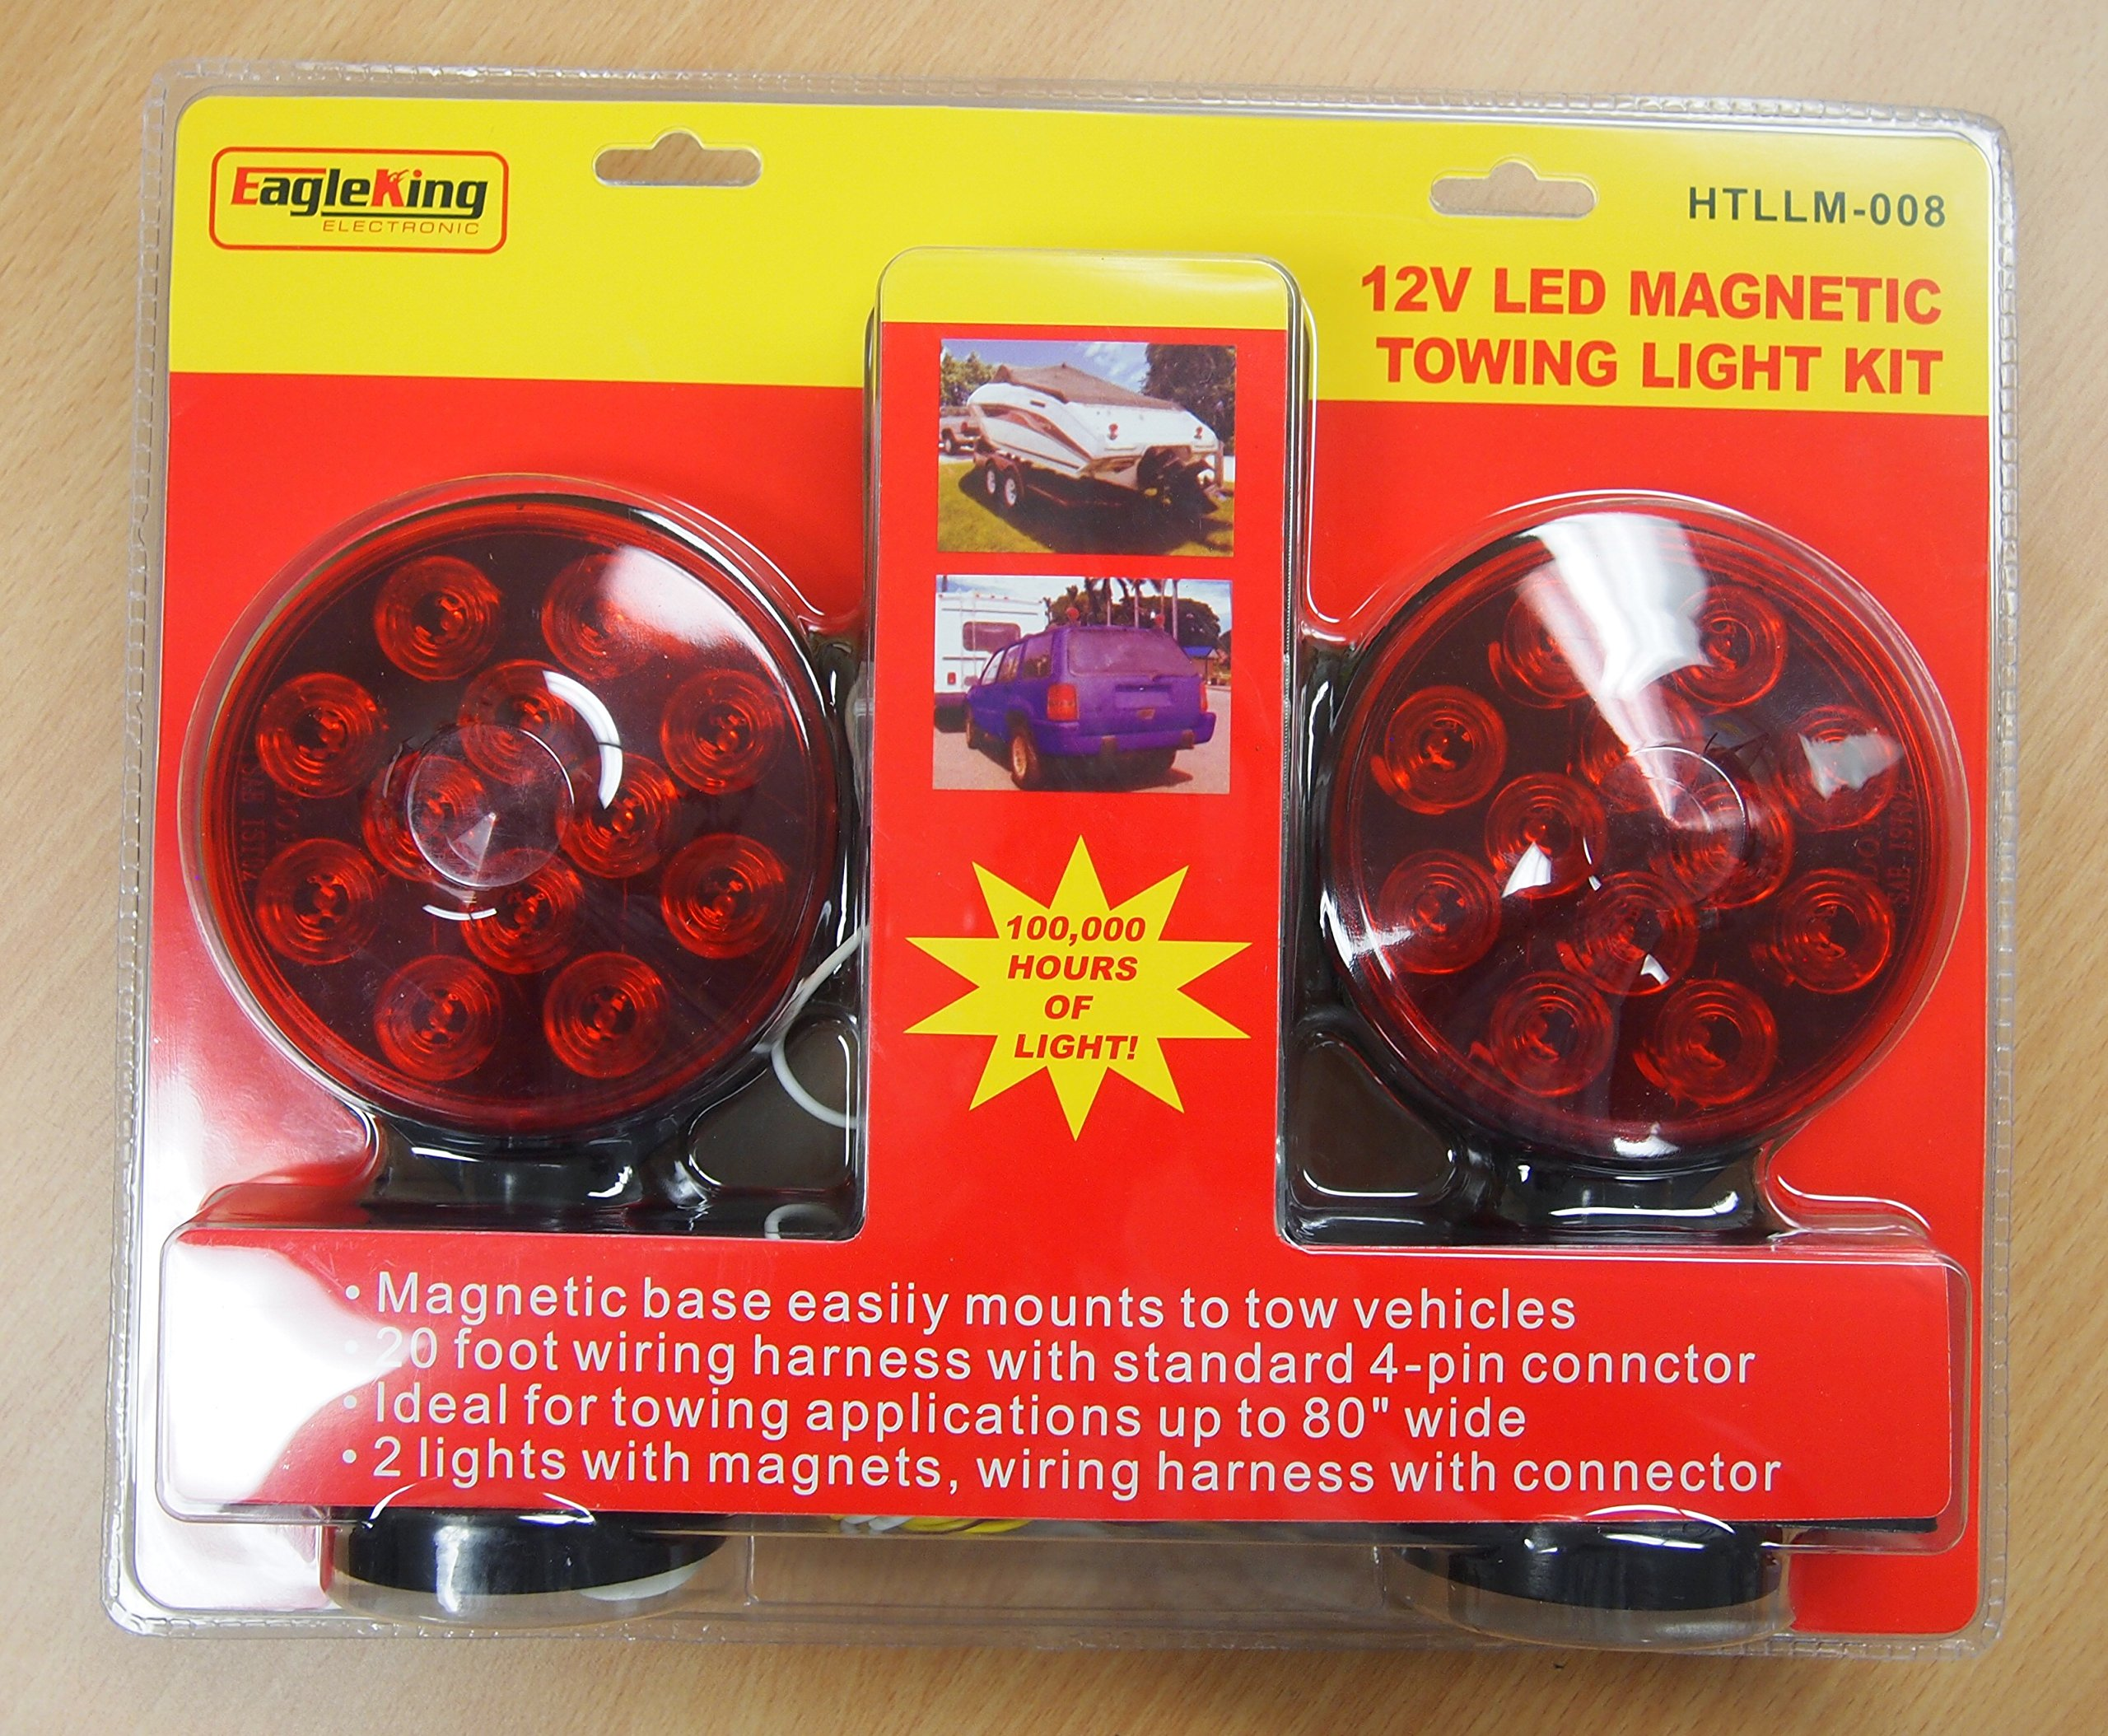 Linkitom Magnetic LED Trailer Towing Light Kit DOT Approved 24ft Cable with 7 pin plug IP68 Waterproof